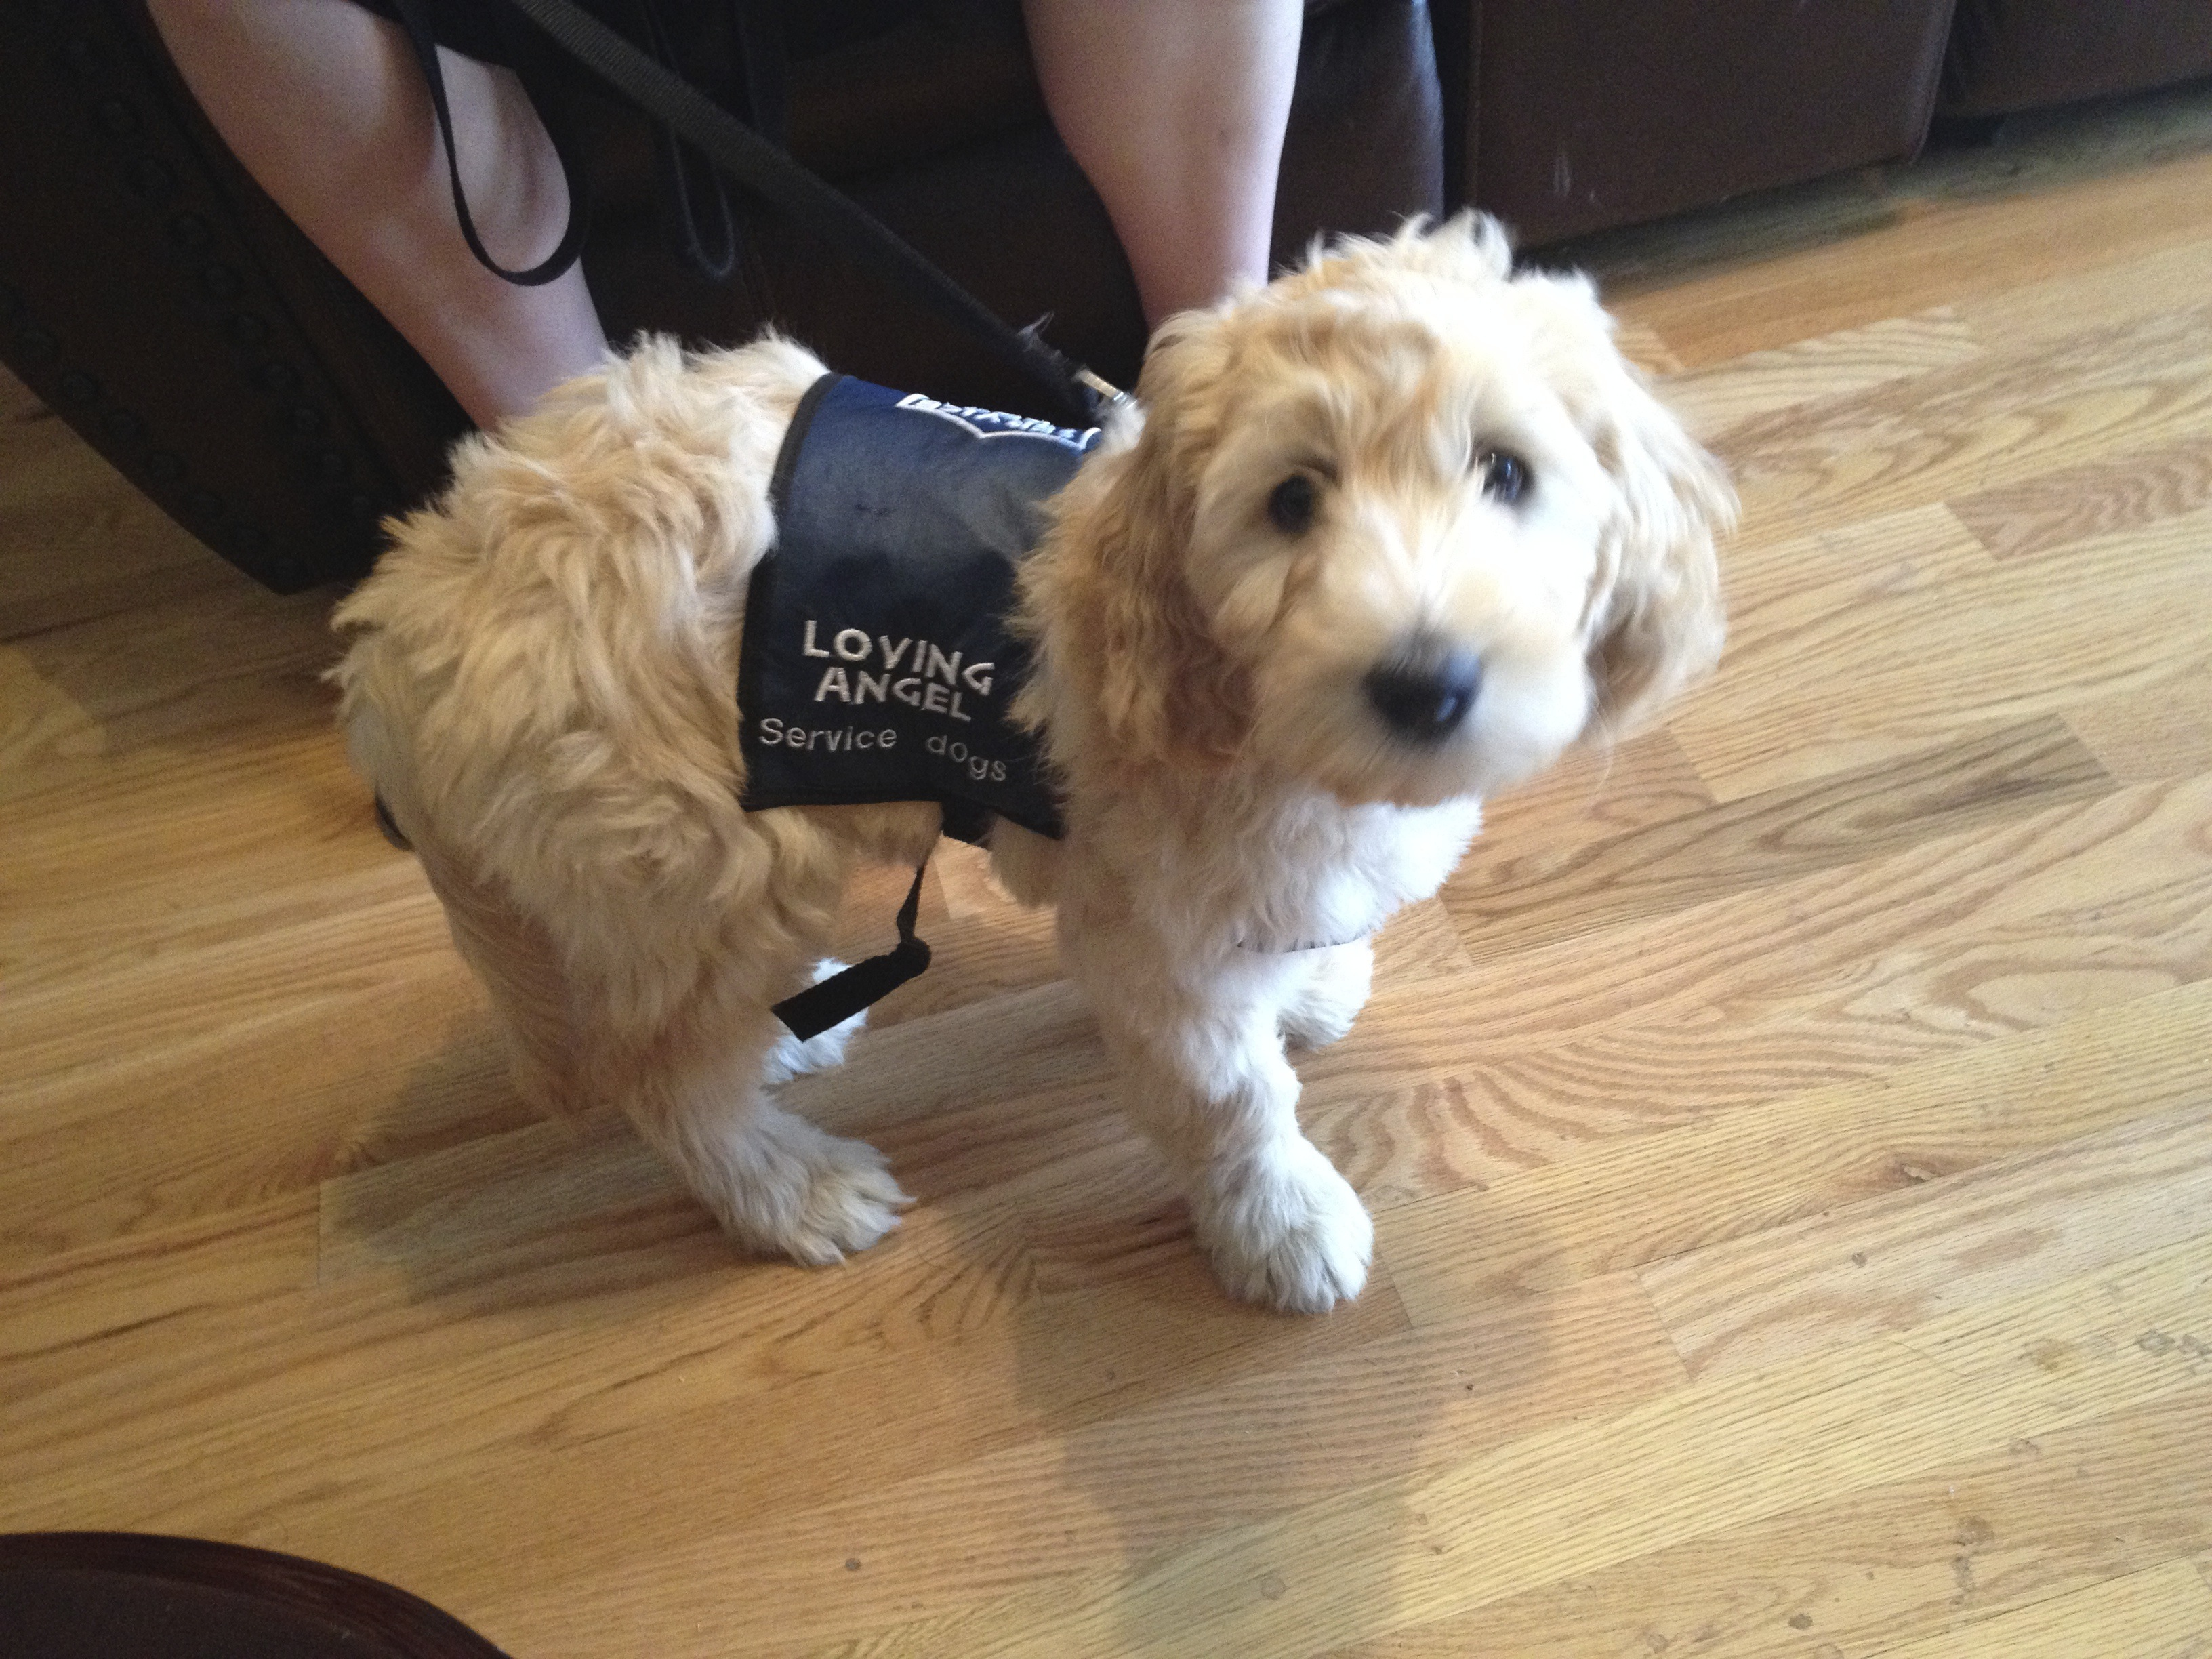 Puppy J.J. in training, Loving Angel Service Dogs, St. George, Utah, May 24, 2015 | Photo courtesy of Cathy Powell, St. George News